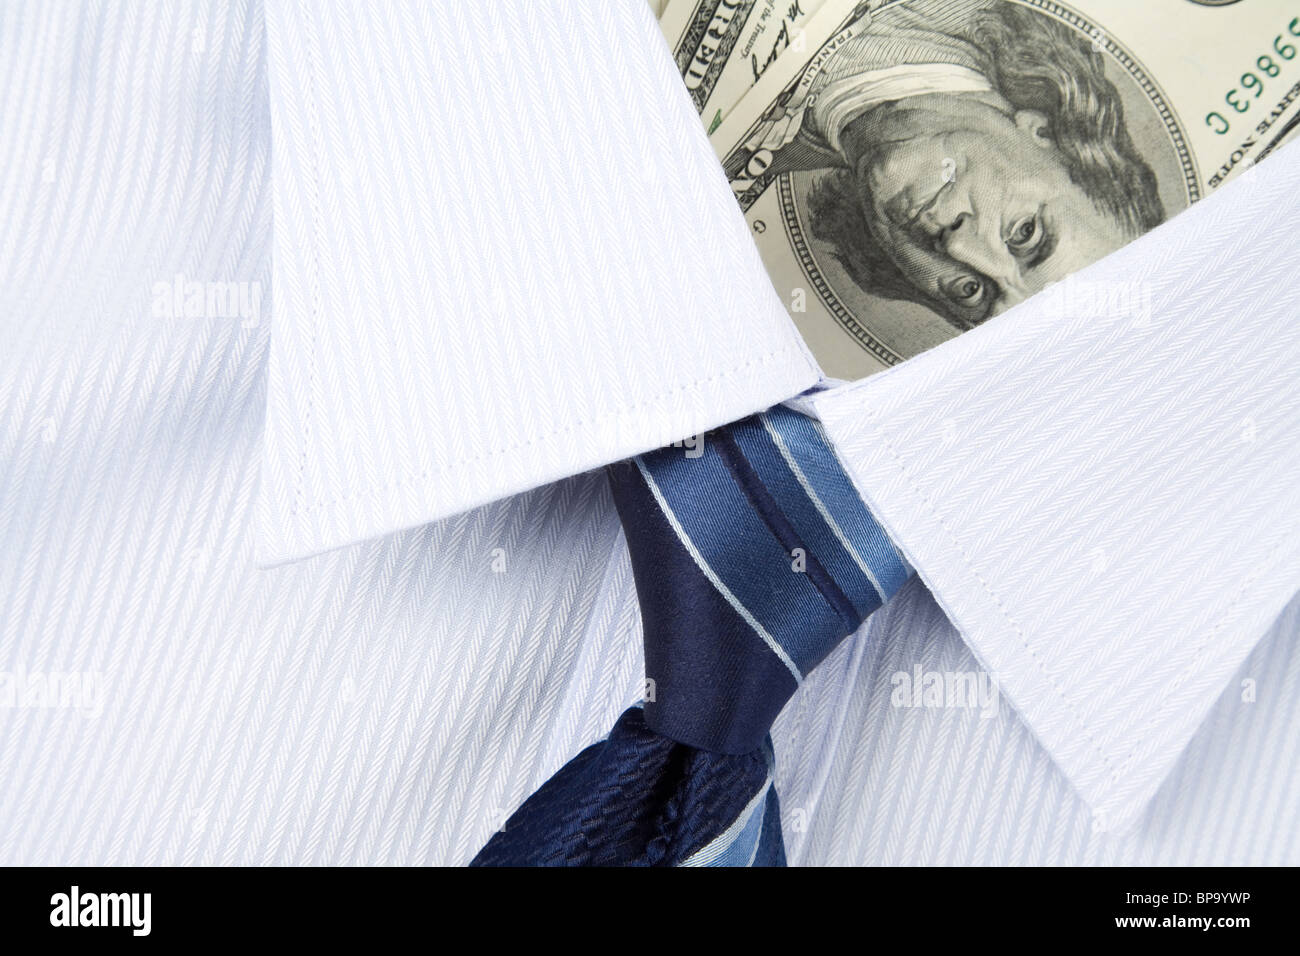 Shirt and Dollar, Business Concept - Stock Image